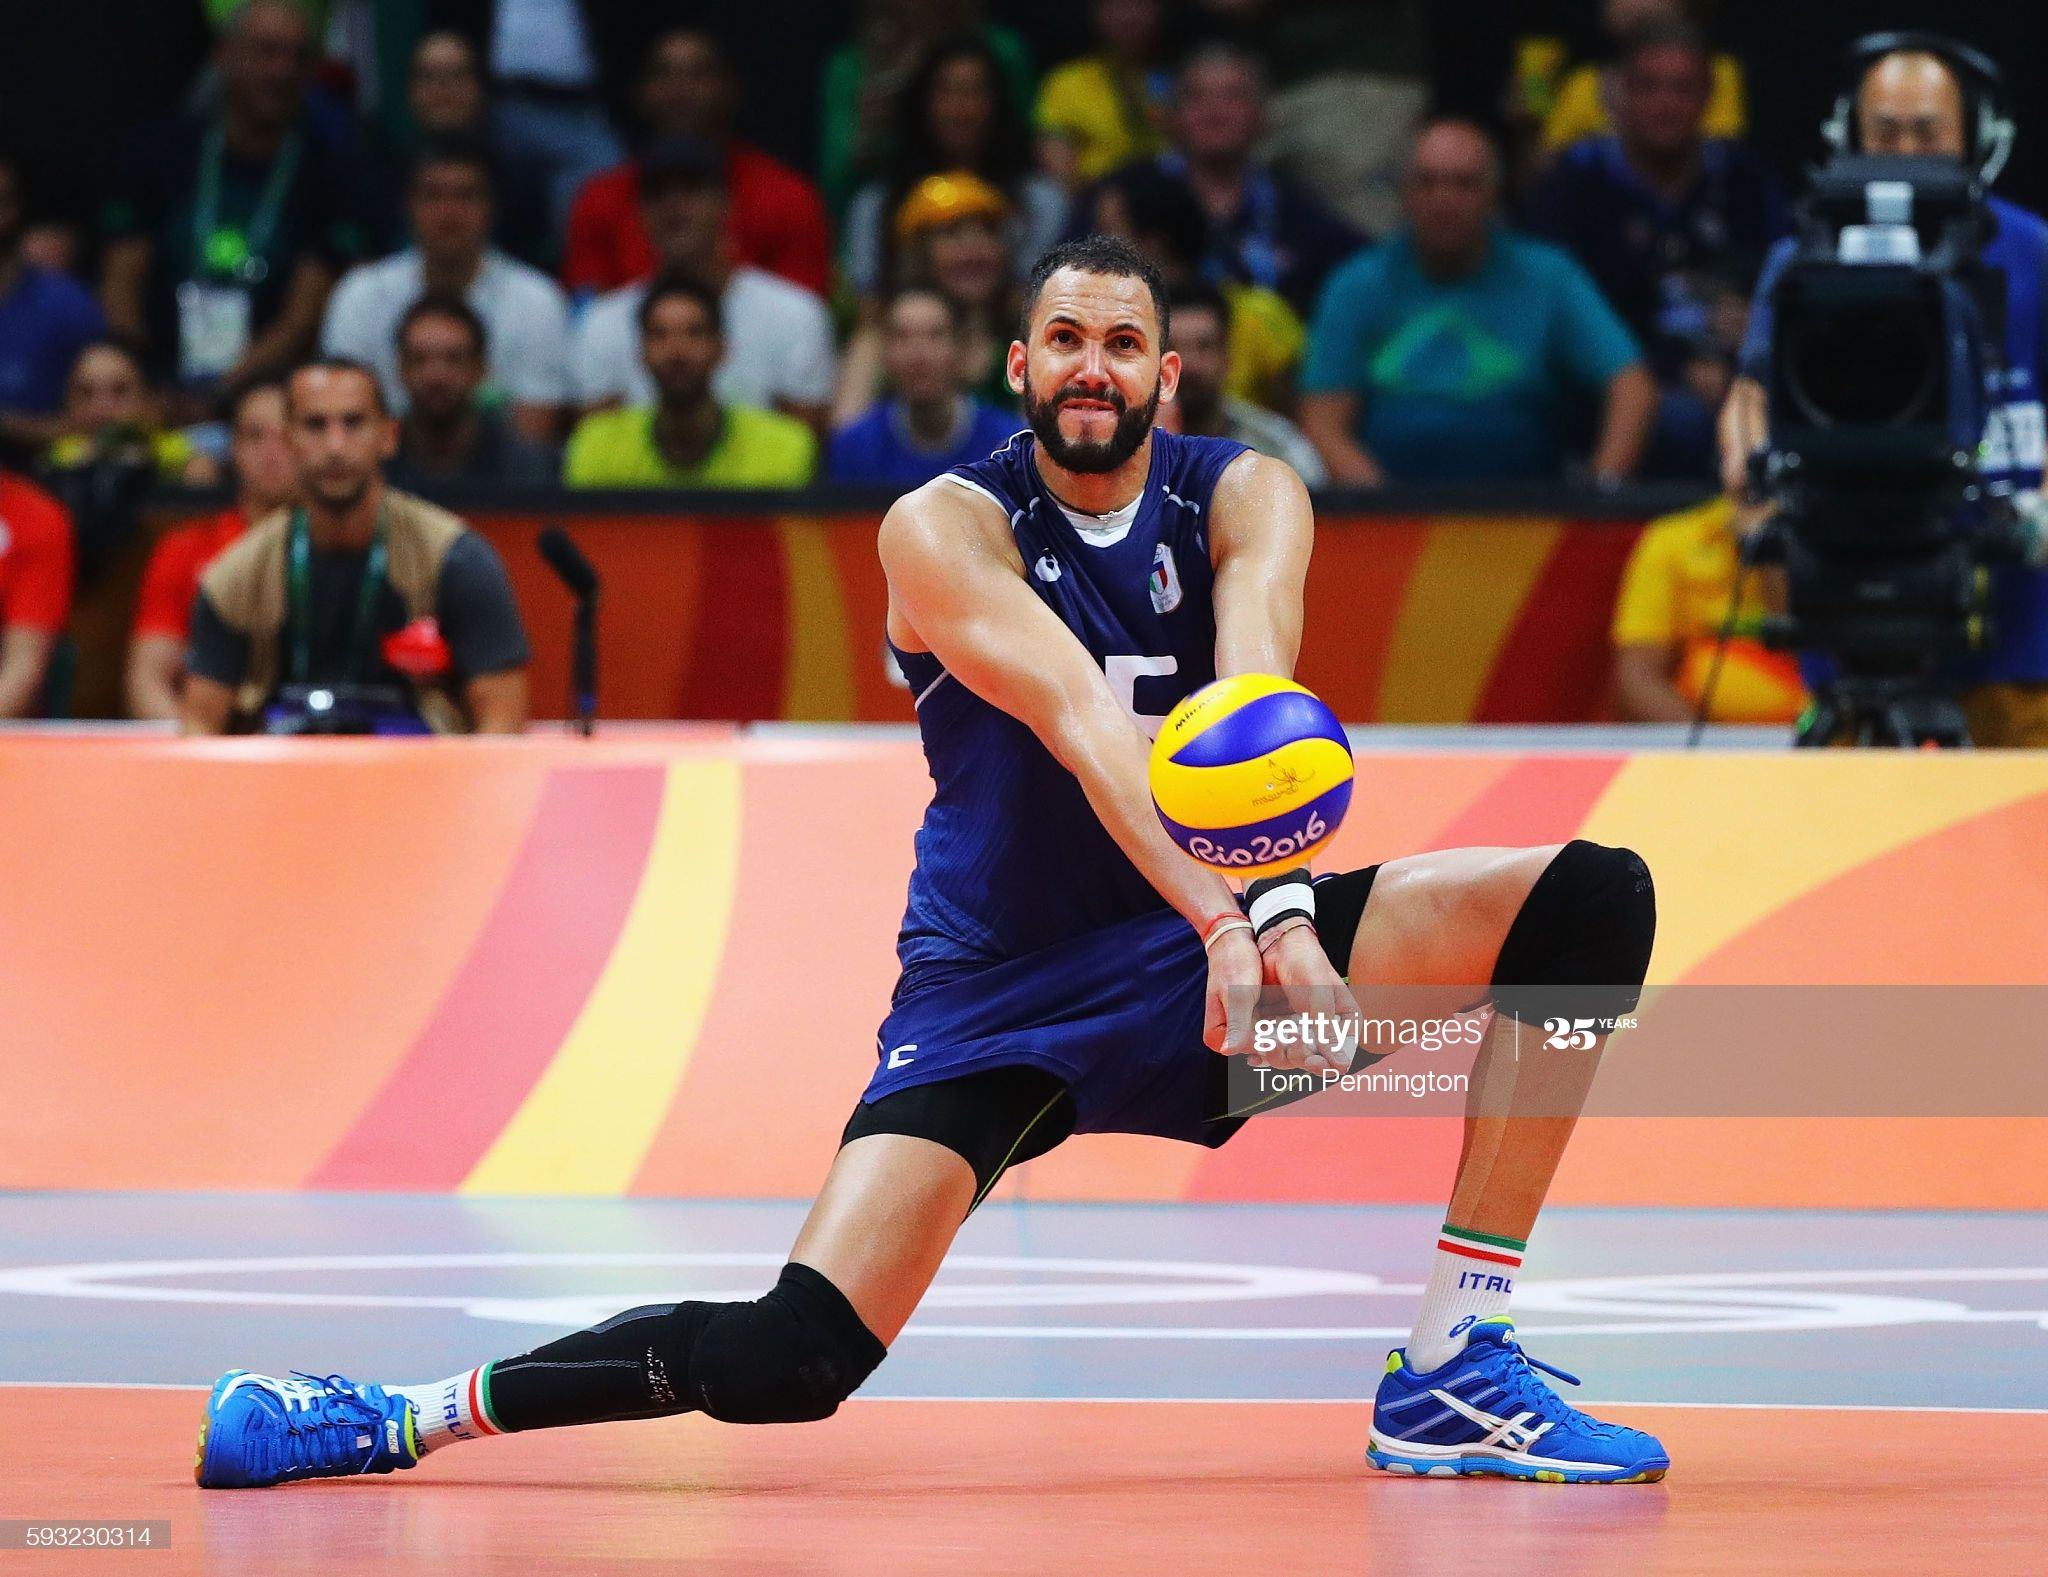 Osmany Juantorena Of Italy Sets The Ball During The Men S Gold Medal Match Between Italy And Brazil On Day 16 Of In 2020 Rio Olympics 2016 Olympics 2016 Olympic Games